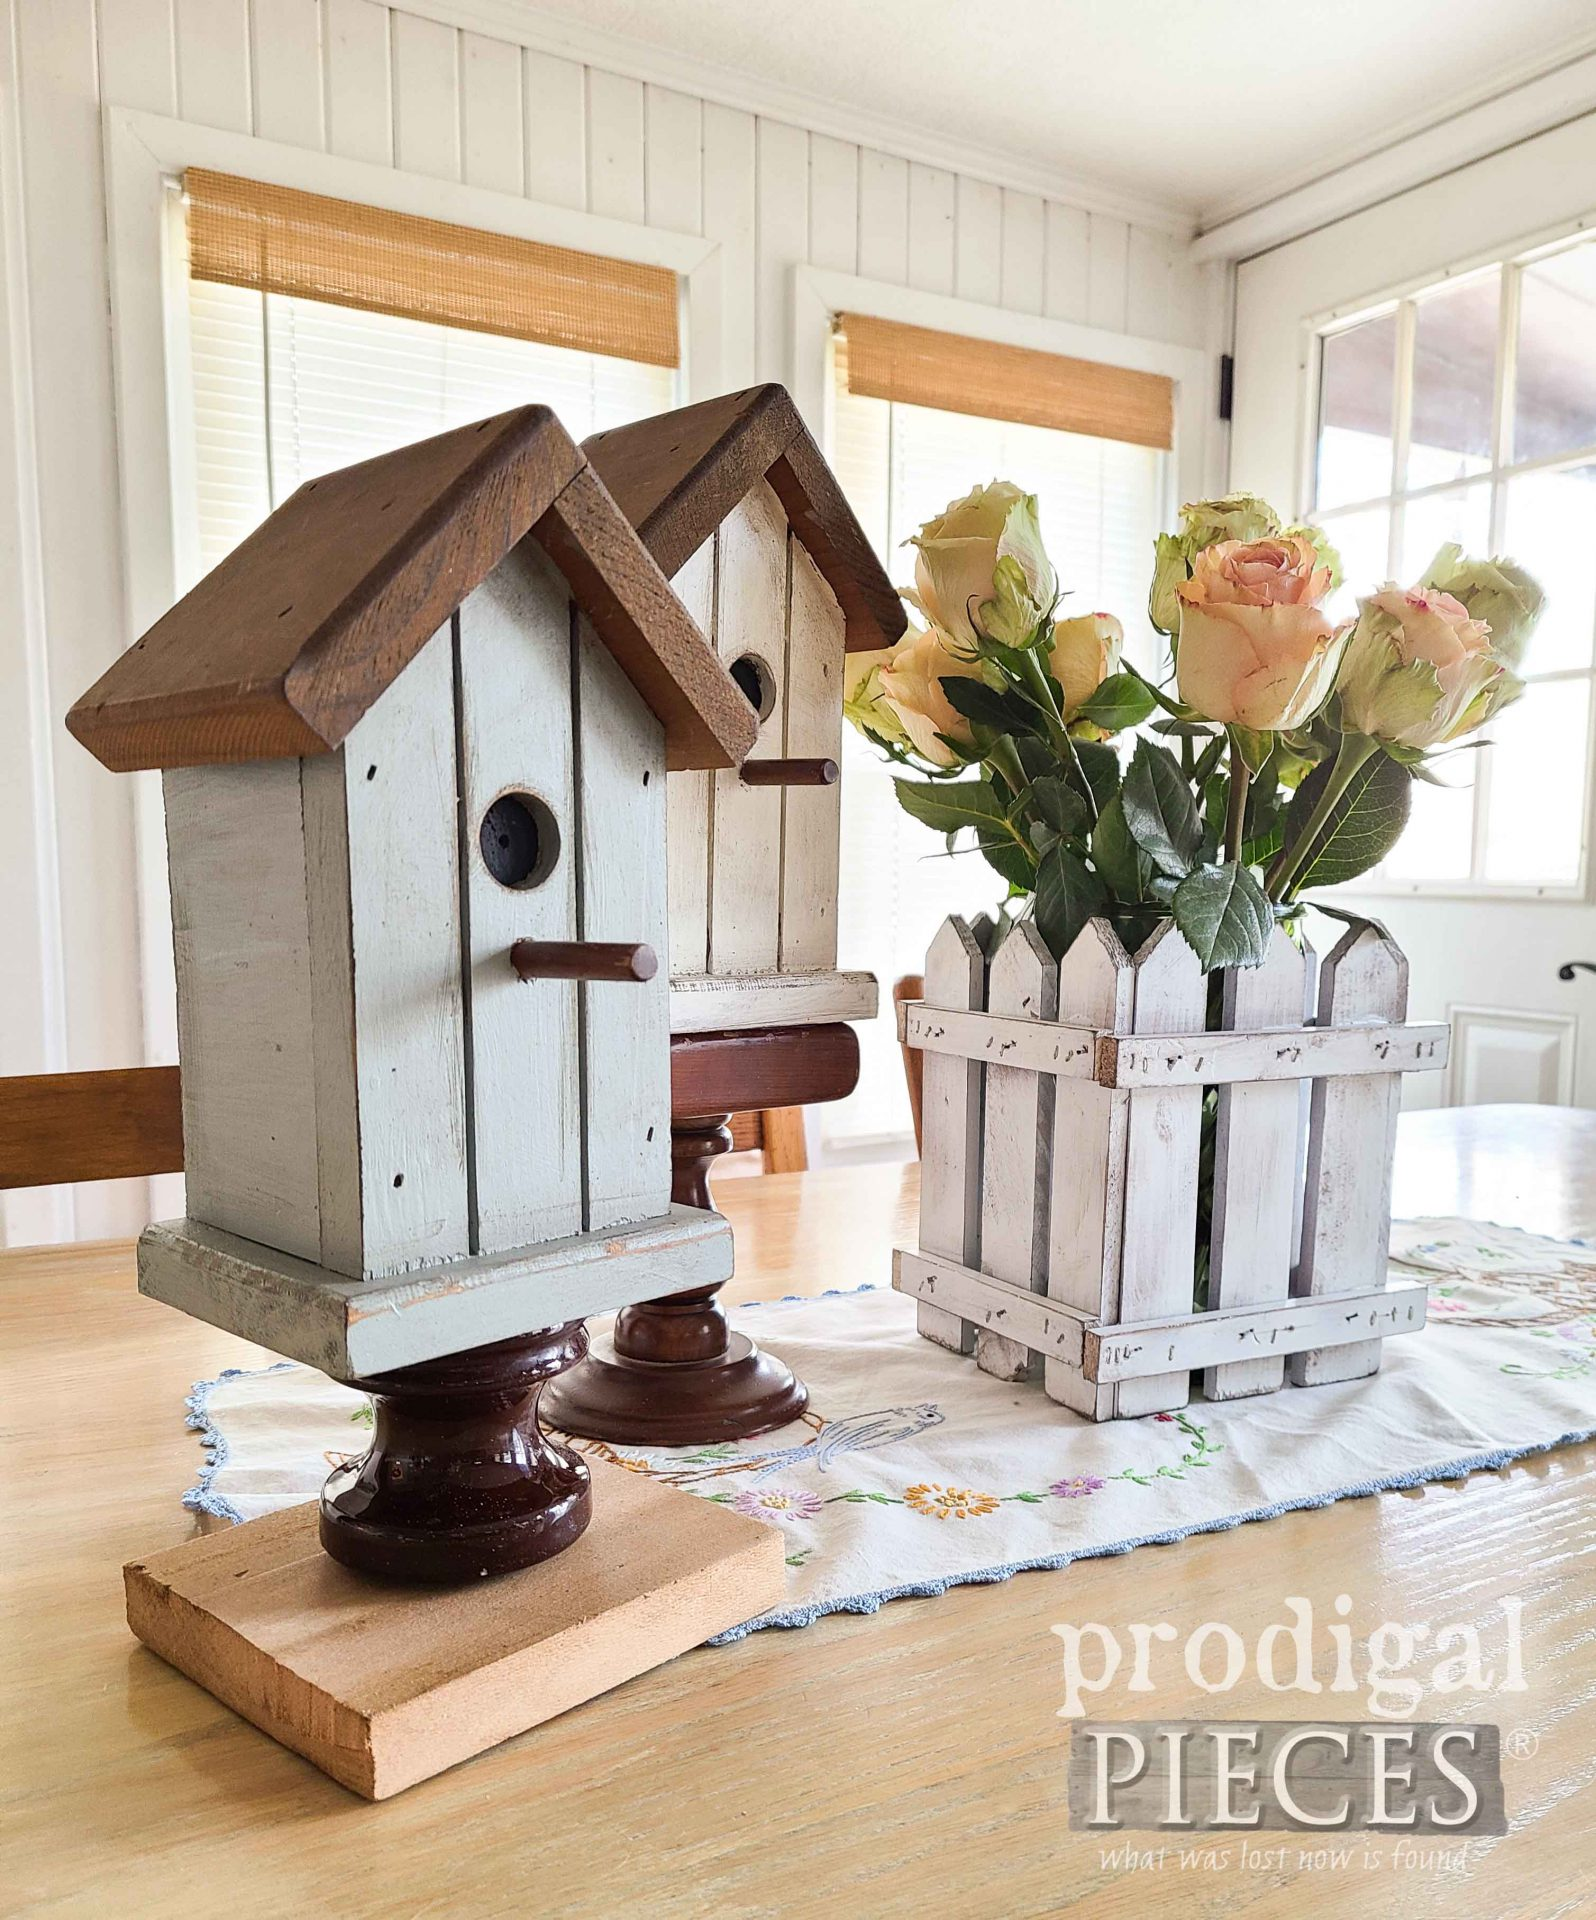 Vintage Style Birdhouses by Larissa of Prodigal Pieces | prodigalpieces.com #prodigalpieces #vintage #home #spring #homedecor